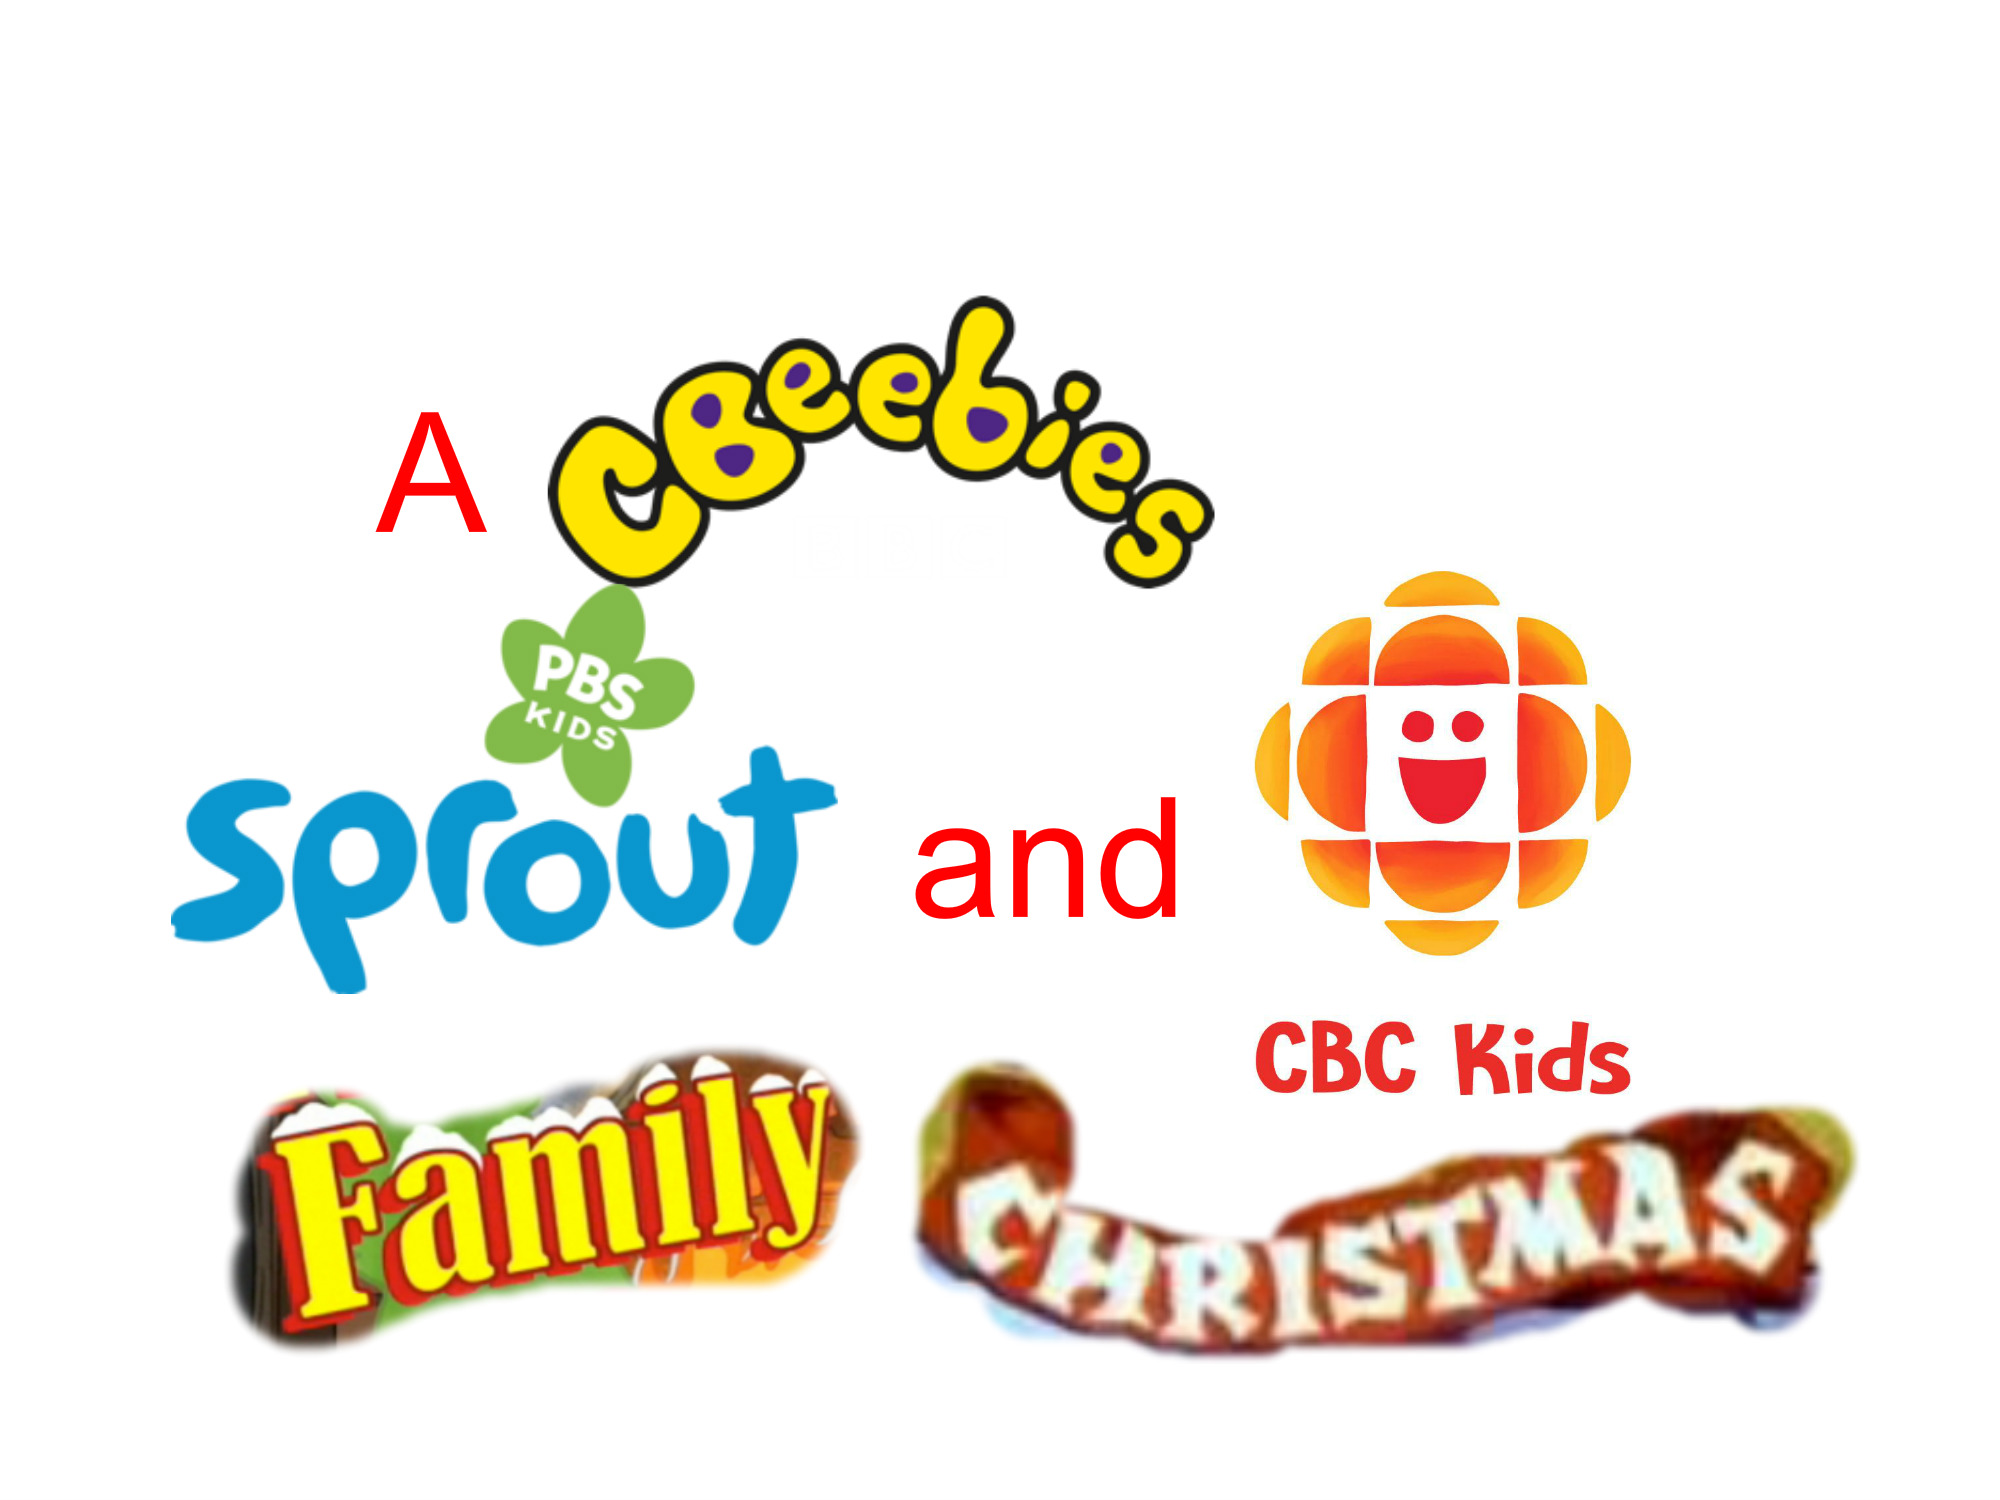 Cbc Christmas Sing In 2020 CBeebiepedia Fanon: A CBeebies, Sprout, and CBC Kids Family